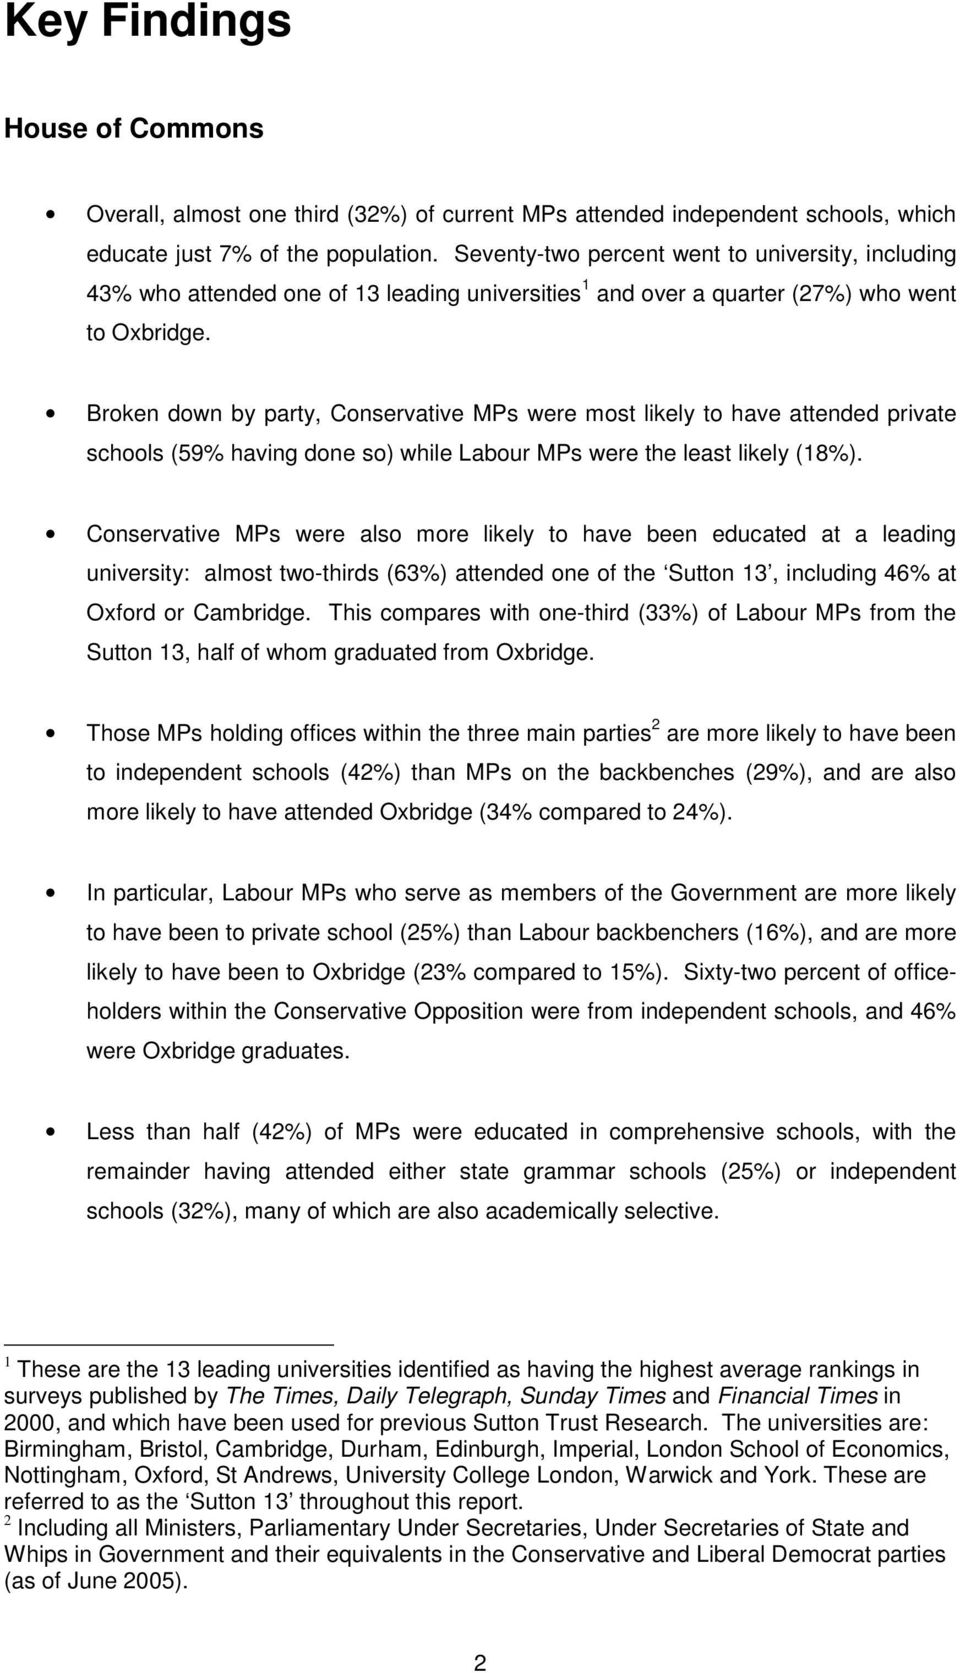 Broken down by party, Conservative MPs were most likely to have attended private schools (59% having done so) while Labour MPs were the least likely (18%).